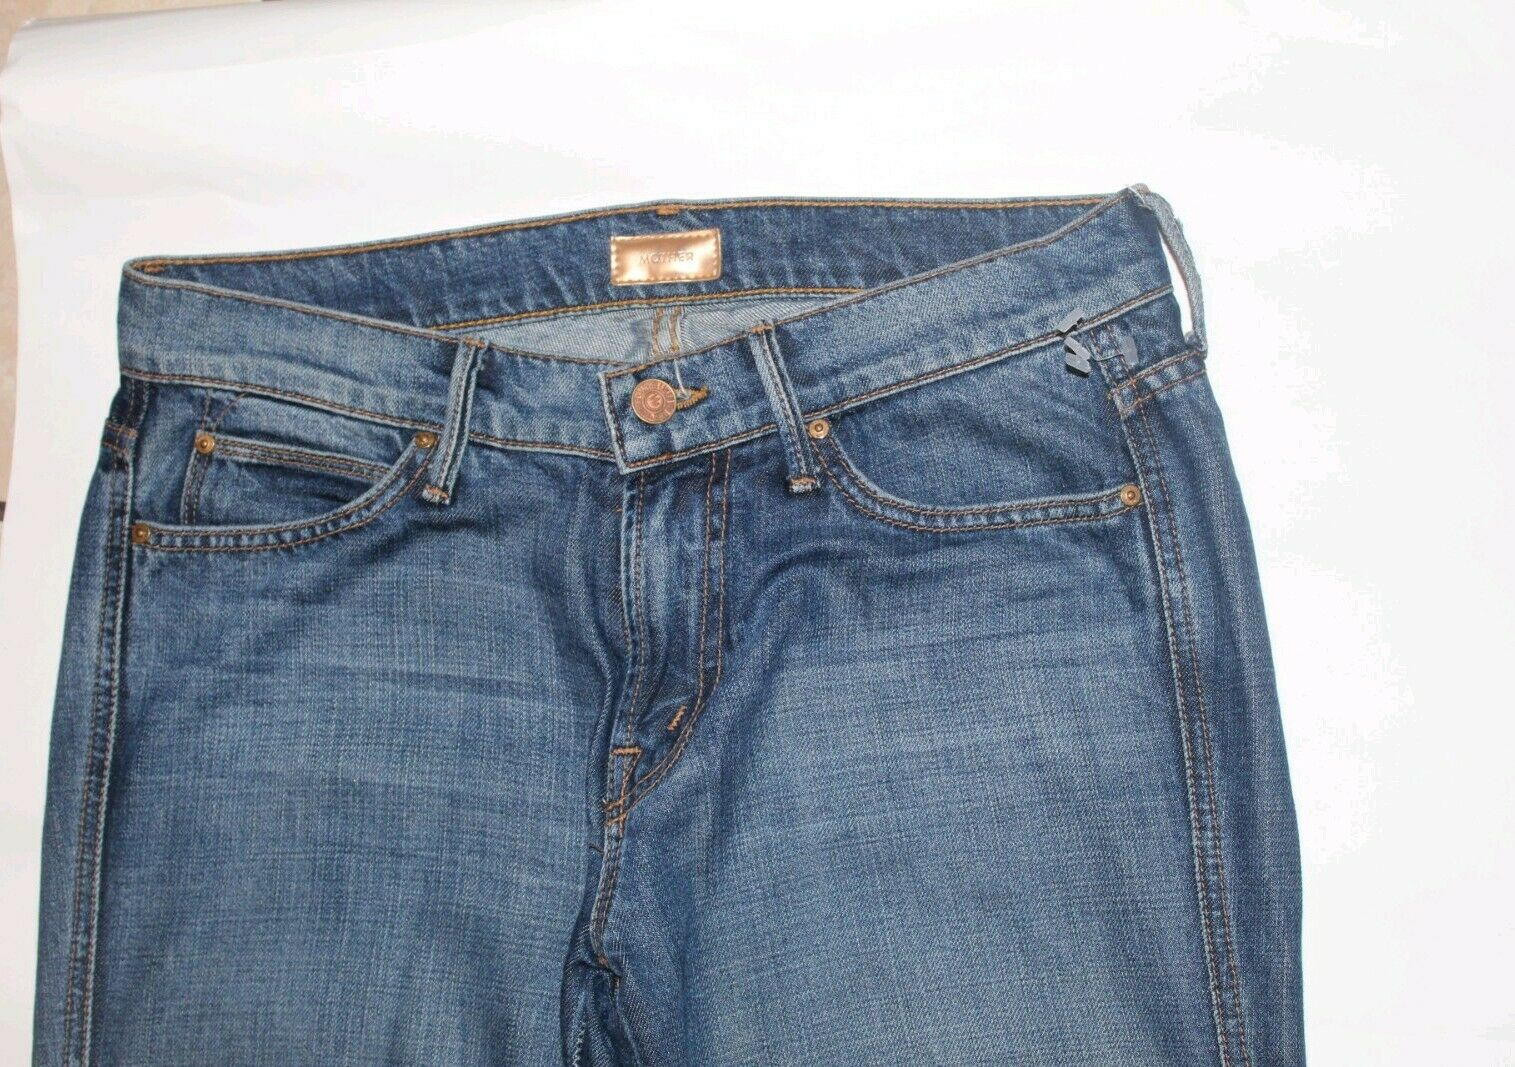 MOTHER Jeans Holy Rascal Size 26 Straight Leg EEUC